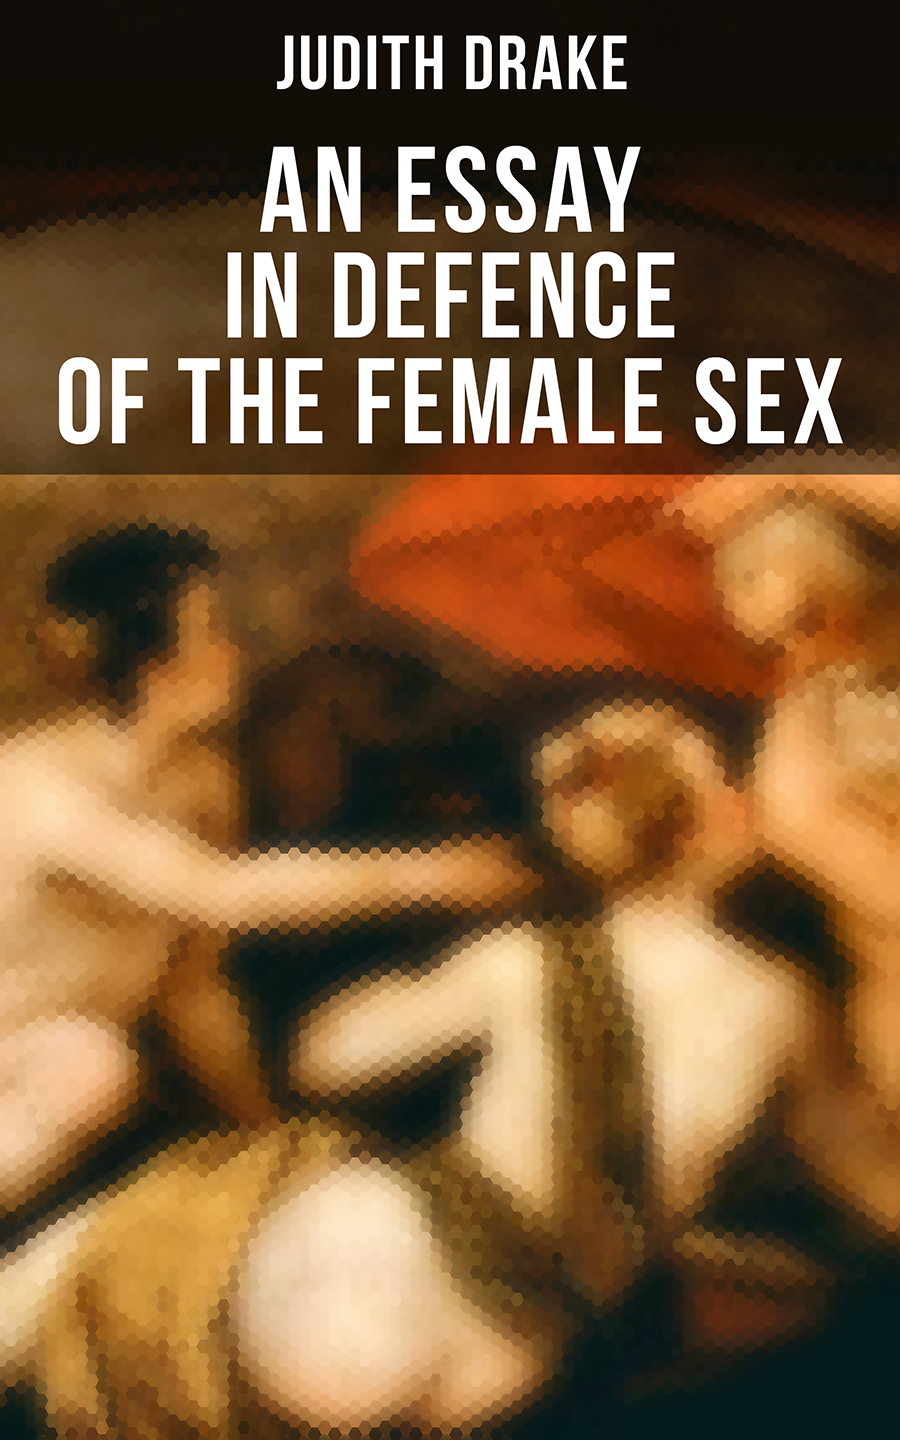 Judith Drake AN ESSAY IN DEFENCE OF THE FEMALE SEX h gardner in defence of the imagination